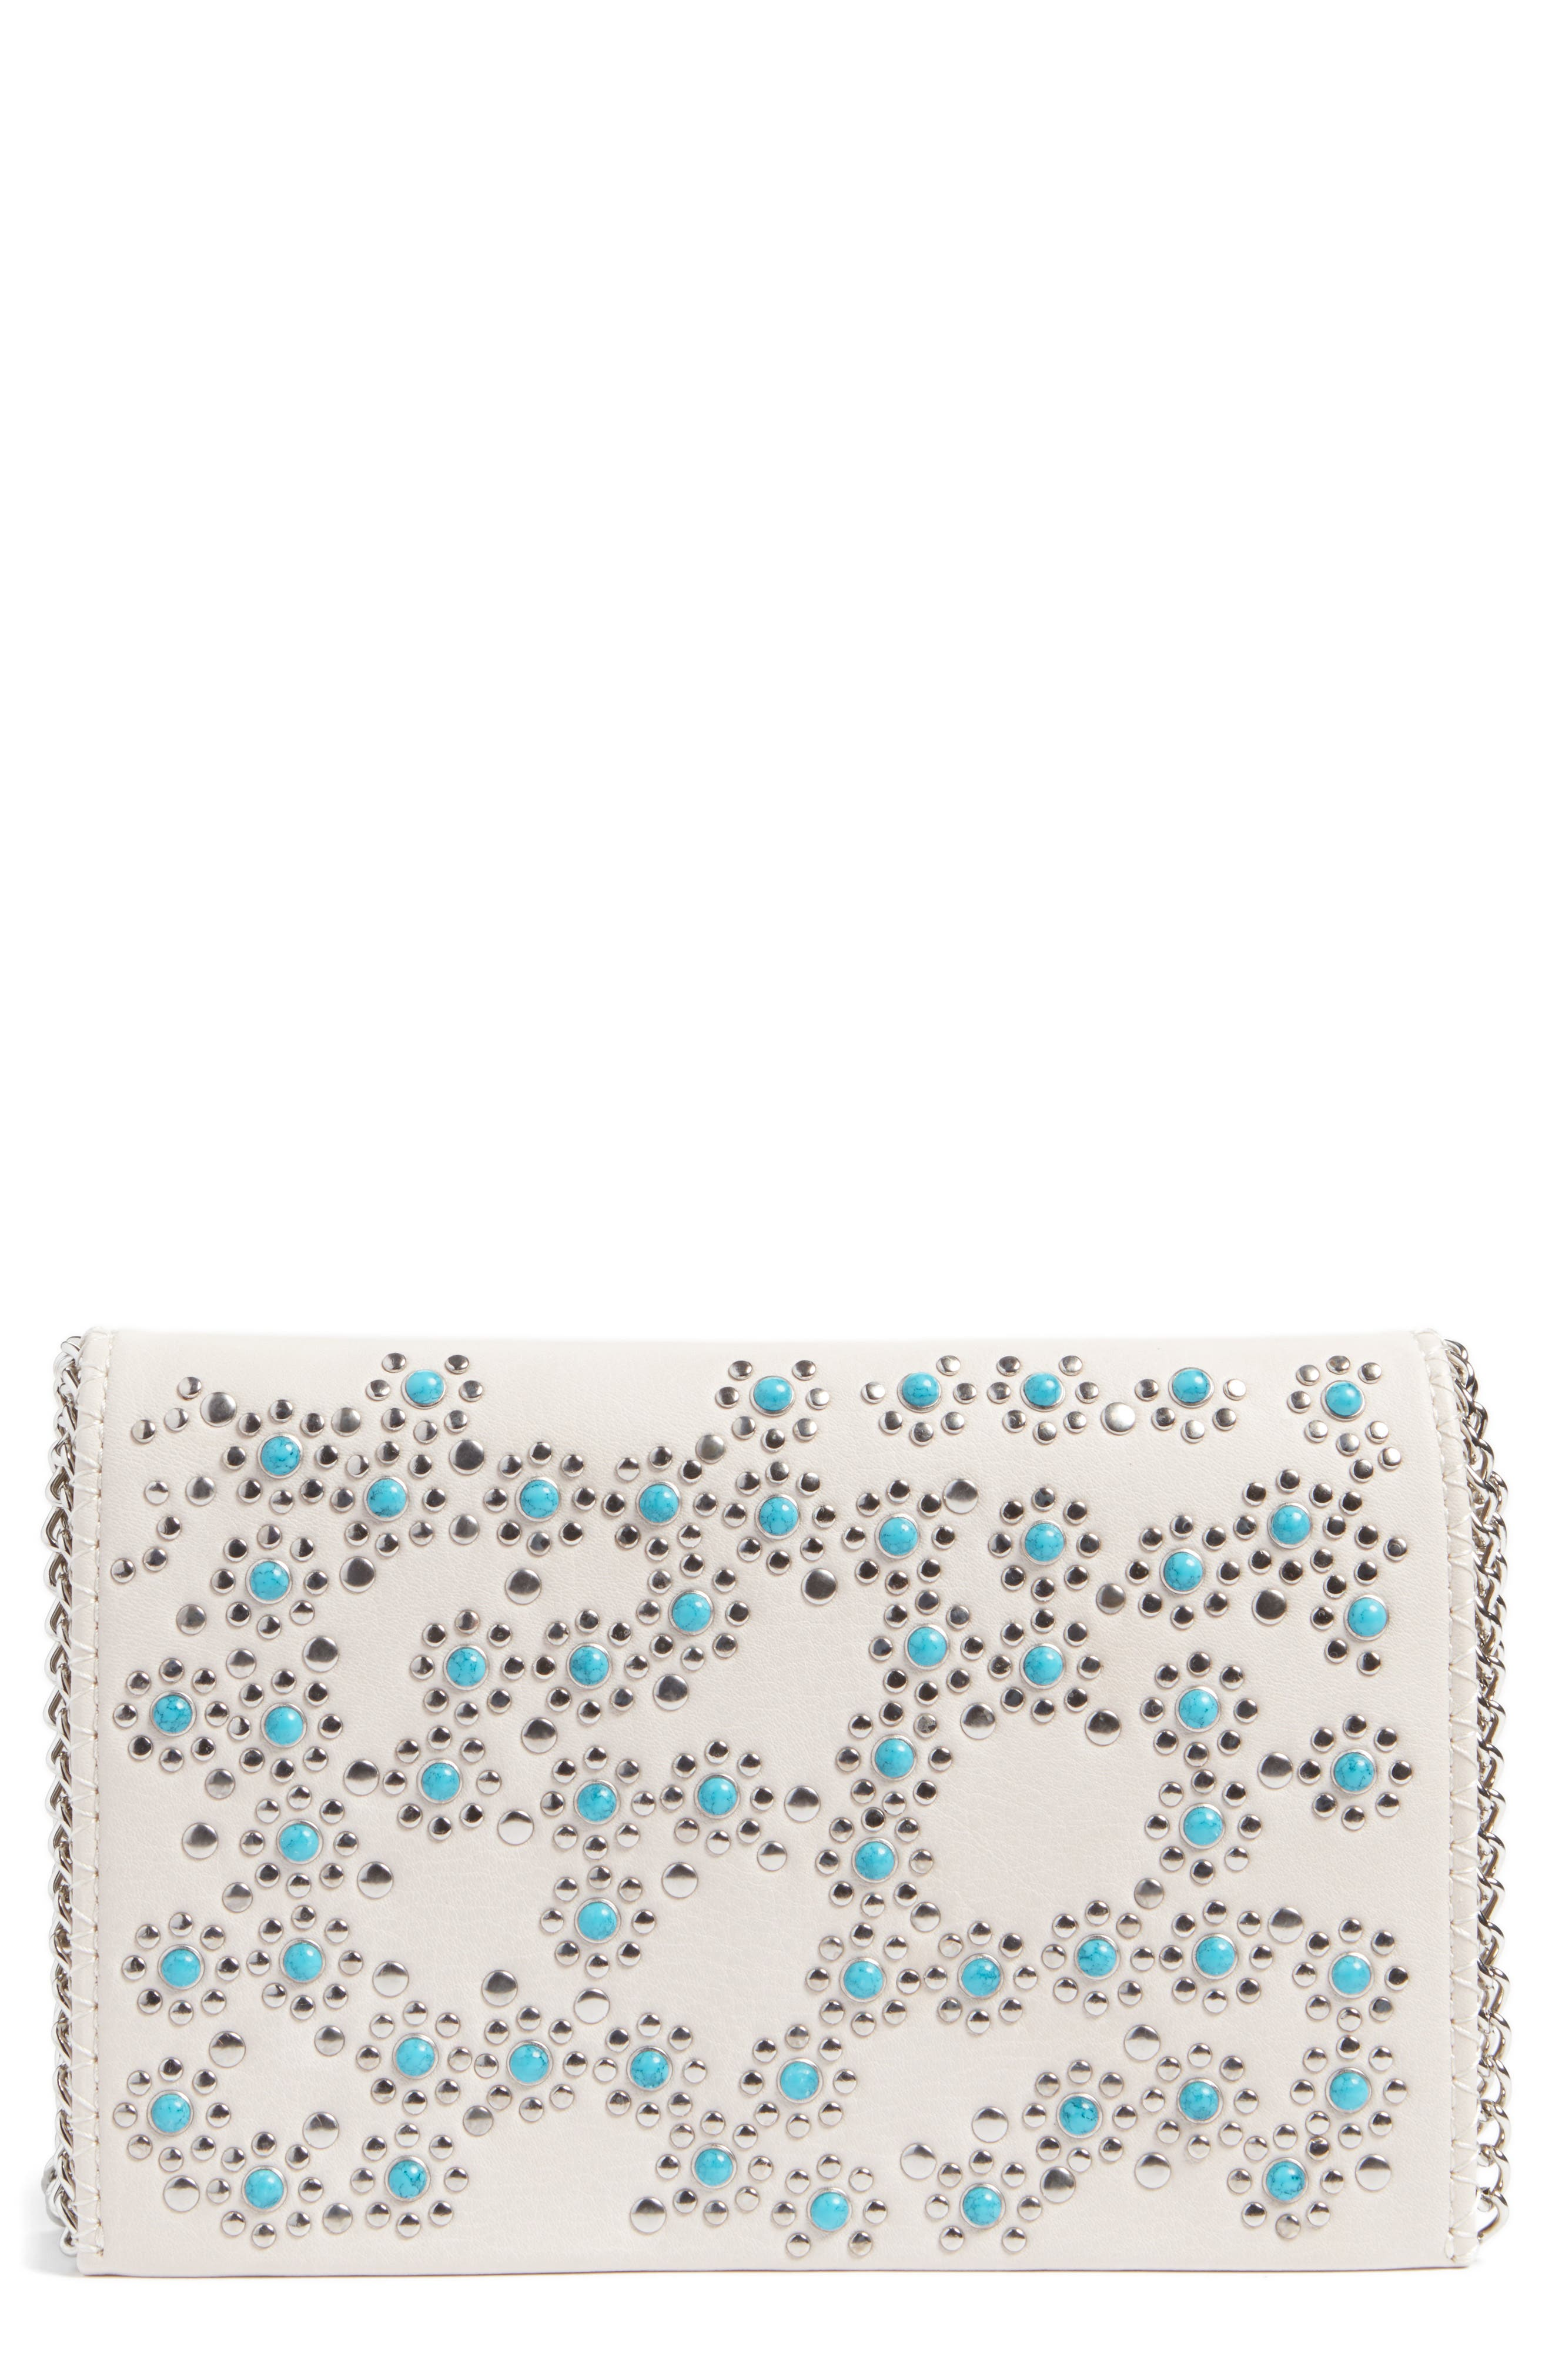 Alternate Image 1 Selected - Chelsea28 Embellished Faux Leather Convertible Clutch